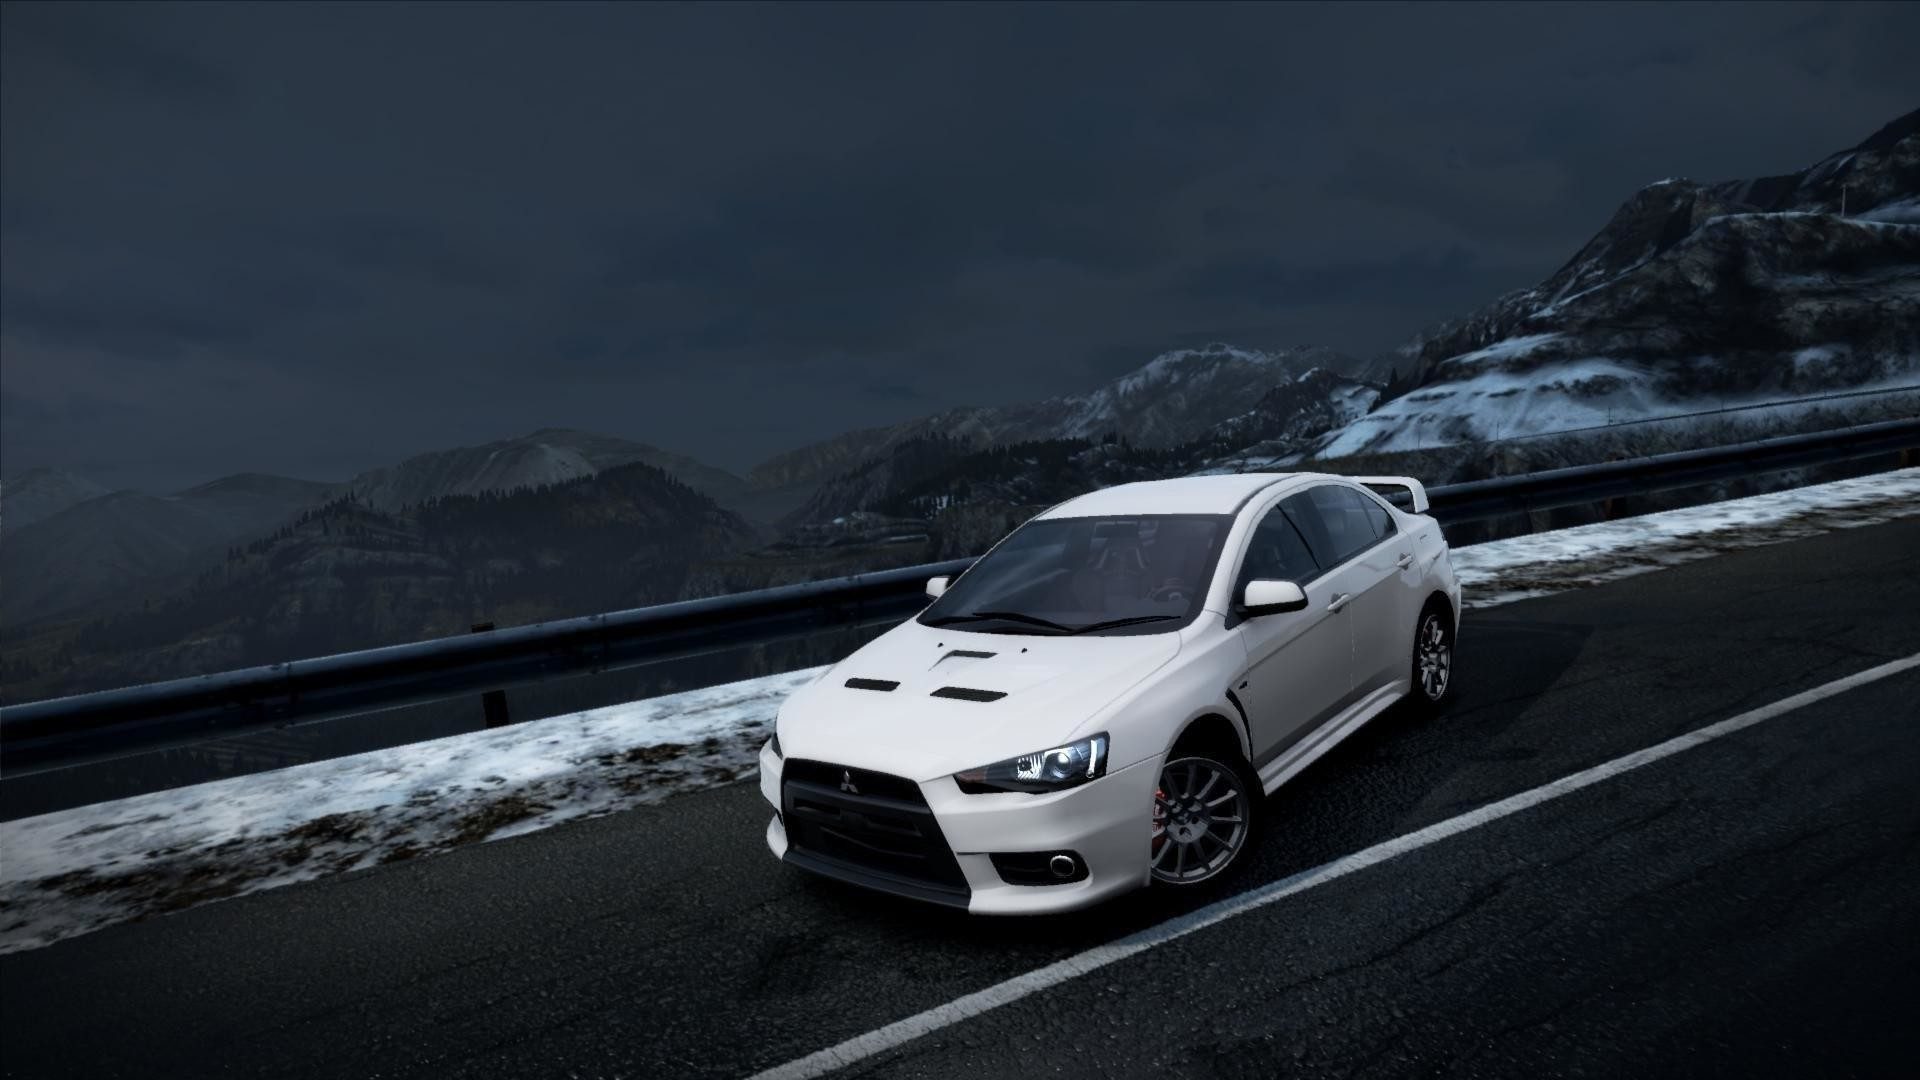 1920x1080 Res: 1920x1200, Mitsubishi lancer Wallpaper